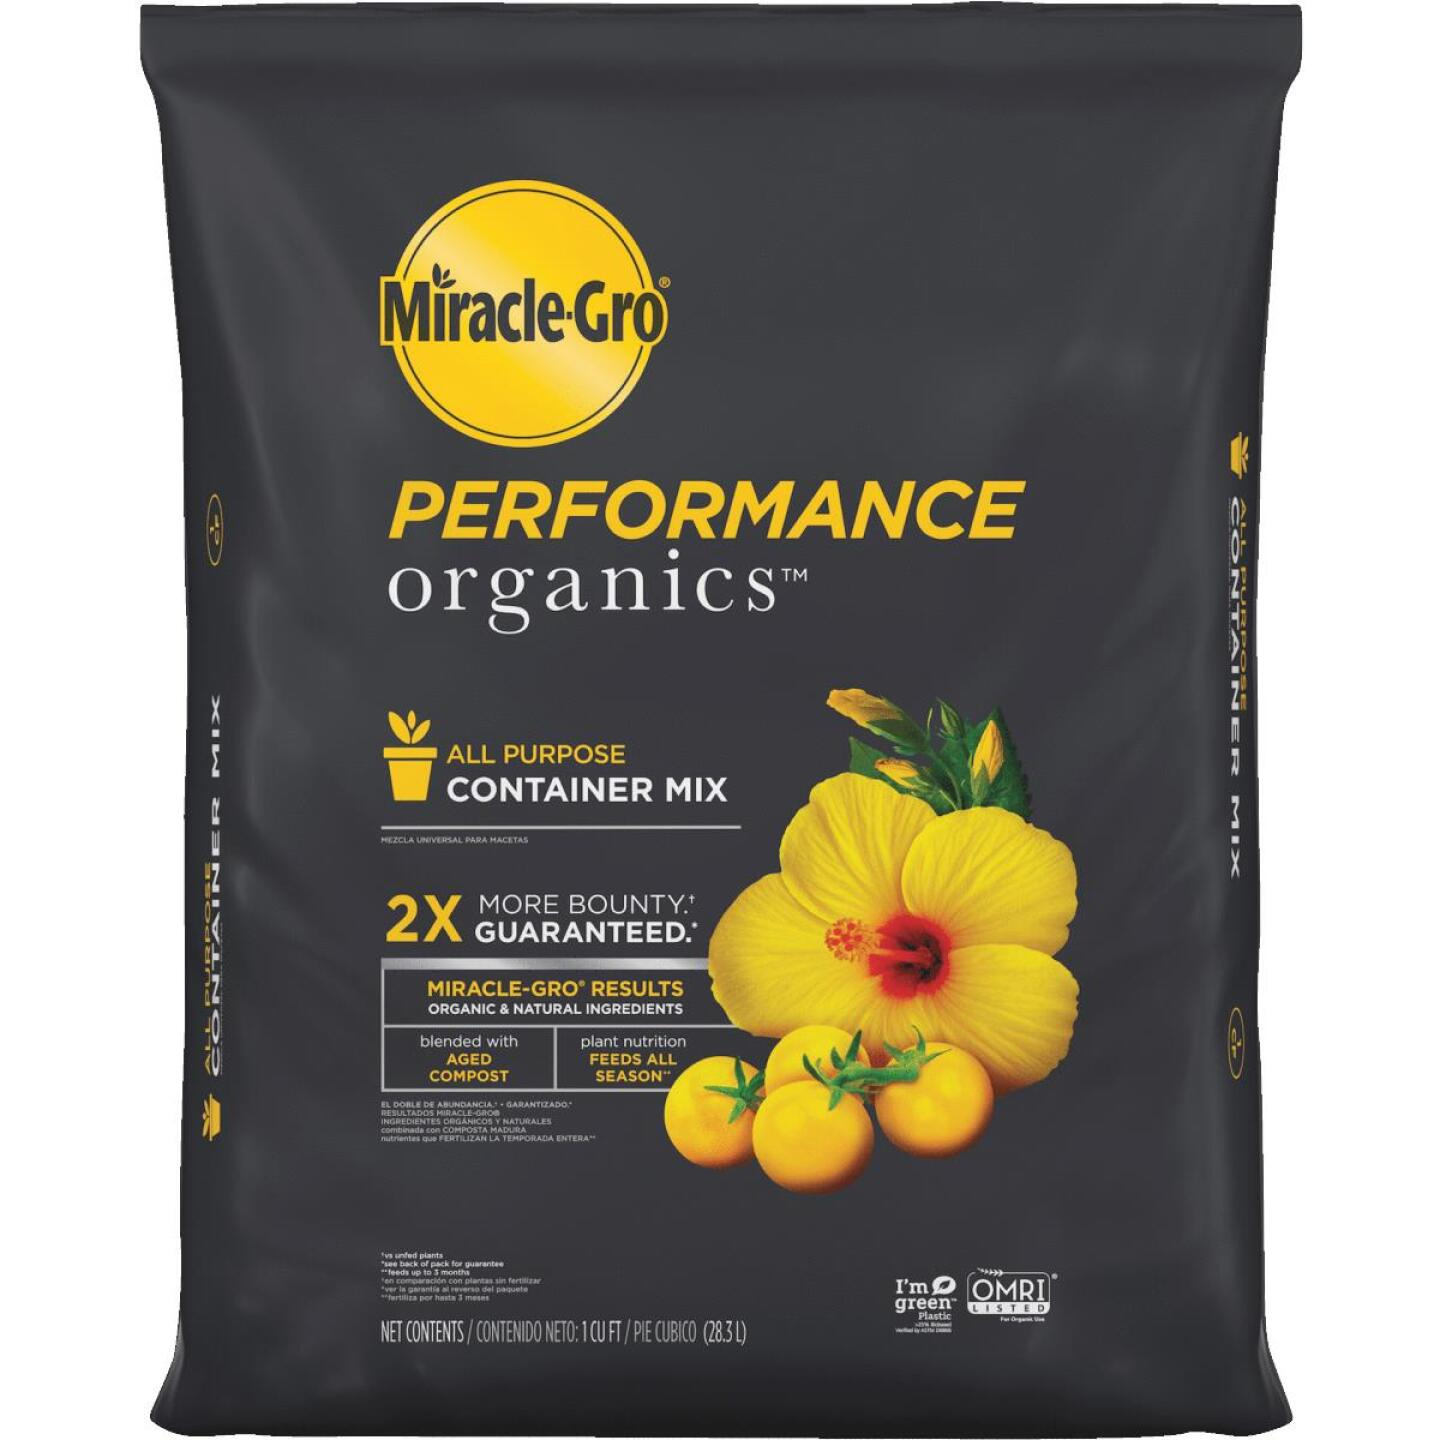 Miracle-Gro Performance Organics 1 Cu. Ft. All Purpose Container Mix (California Only) Image 1